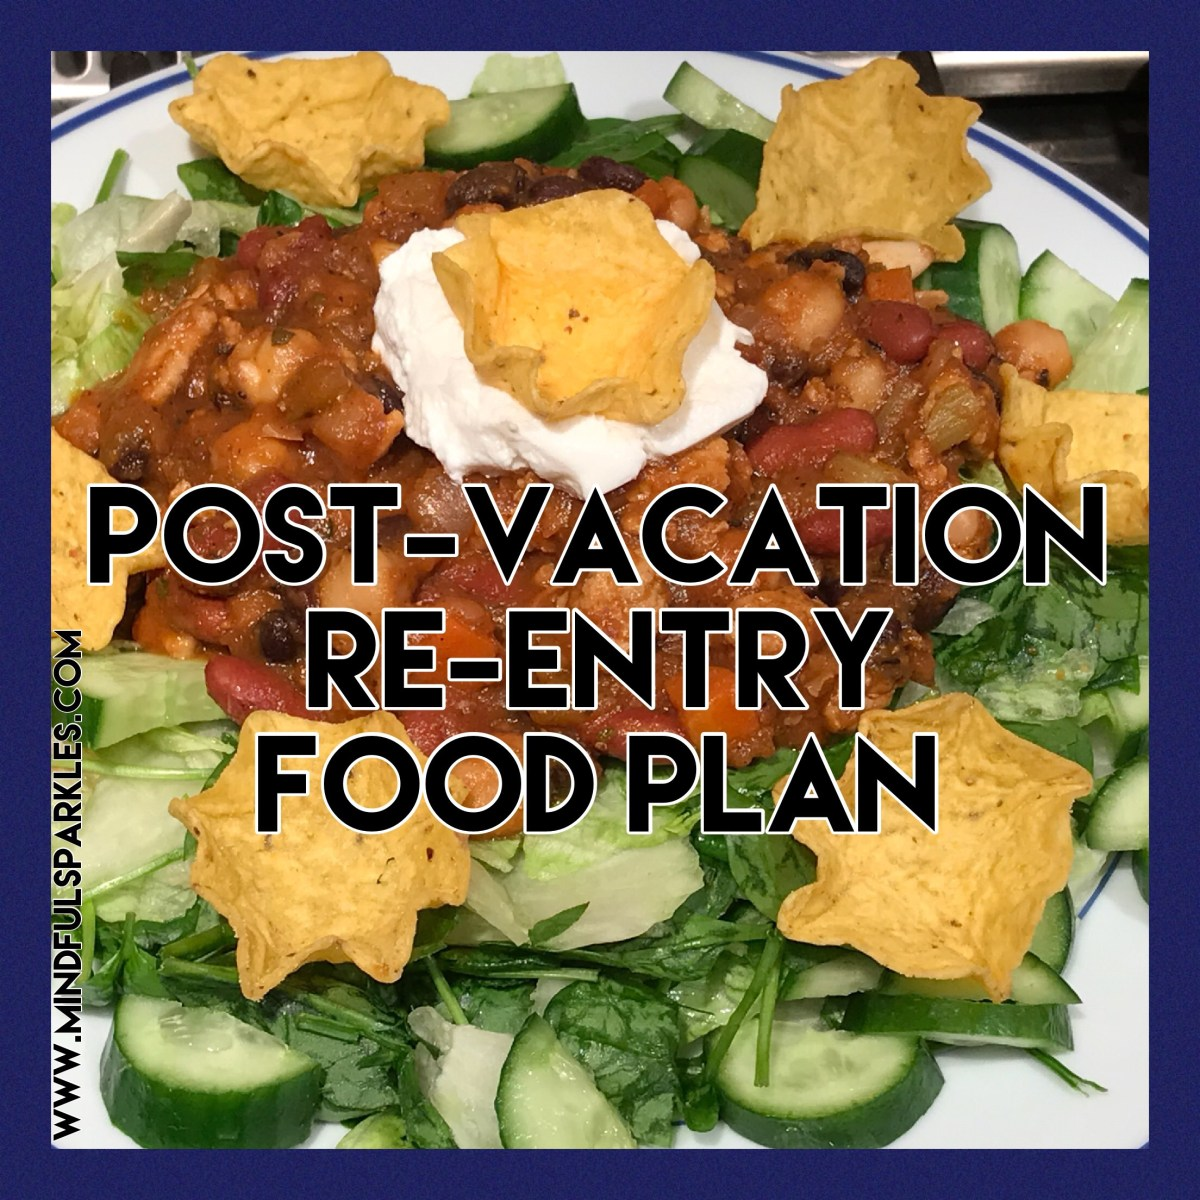 Have a Post-Vacation Food Plan for Getting Back on Track